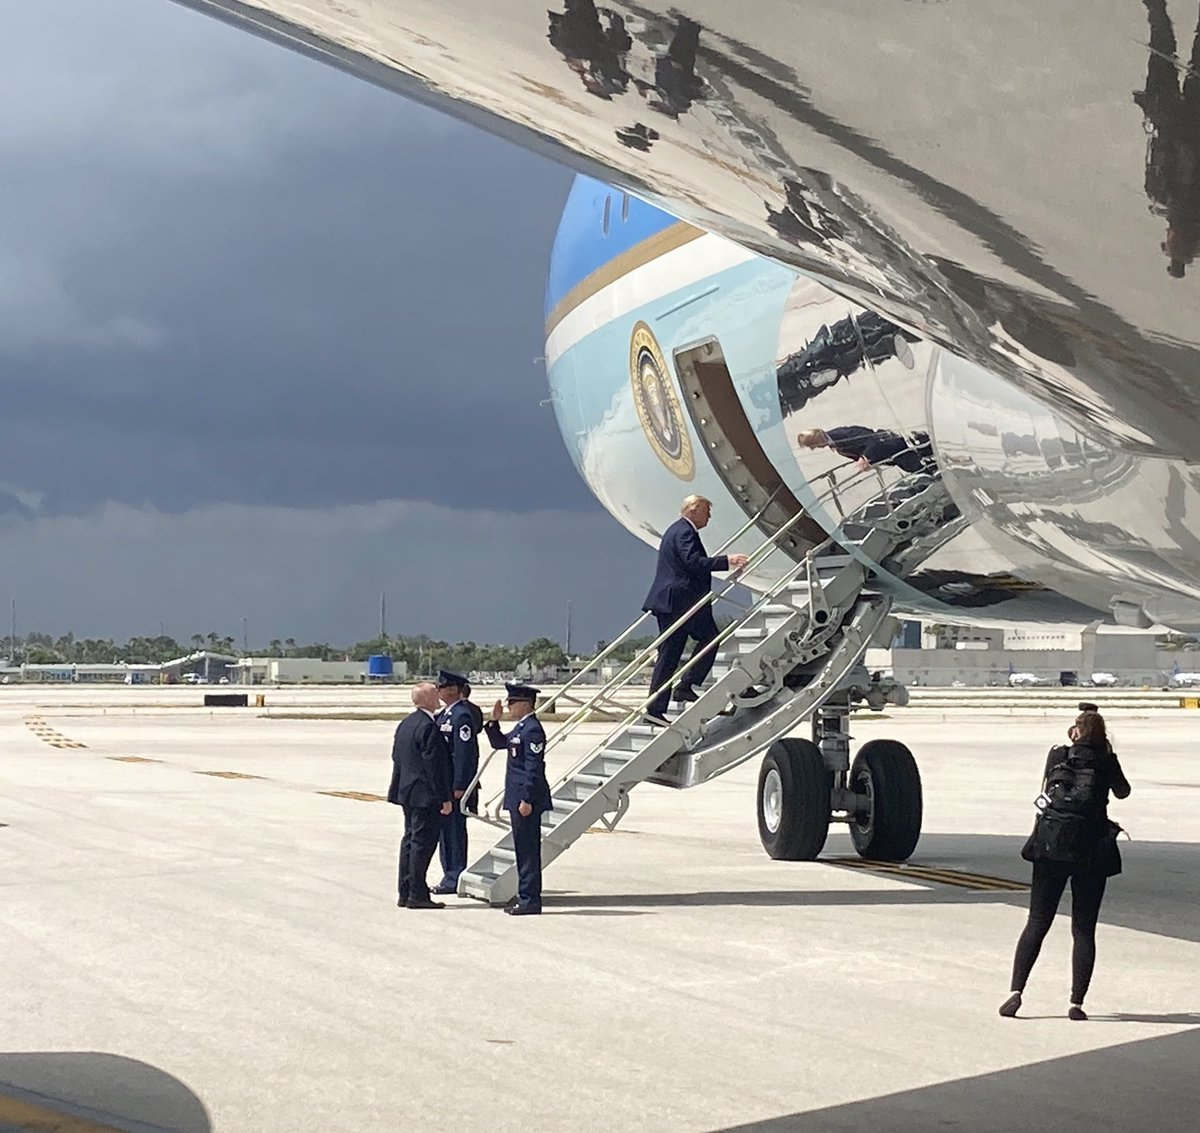 With dark, ominous clouds ahead, President Trump boards Air Force One for very short flight from Miami to Ft. Lauderdale